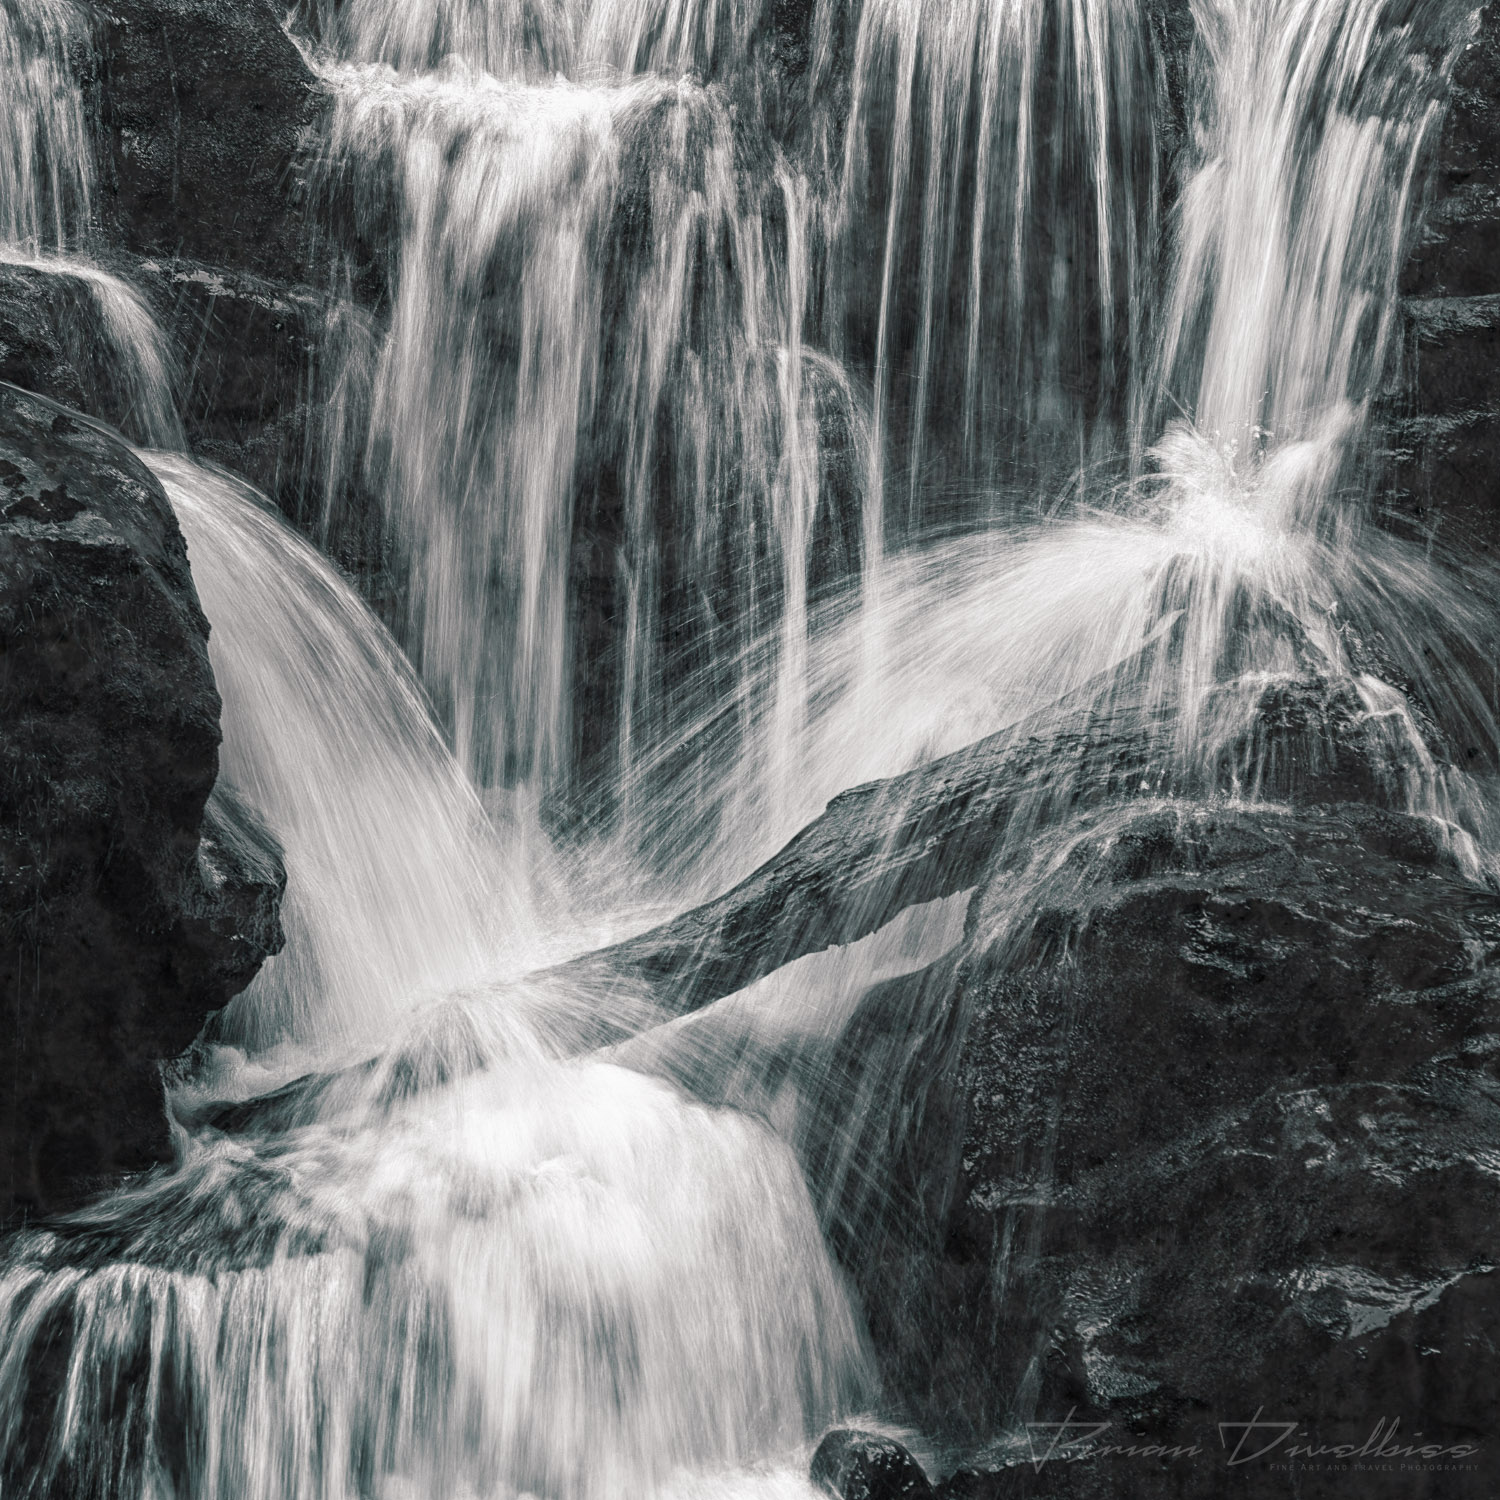 Water falls and bounces over rocks in Oregon in black and white.